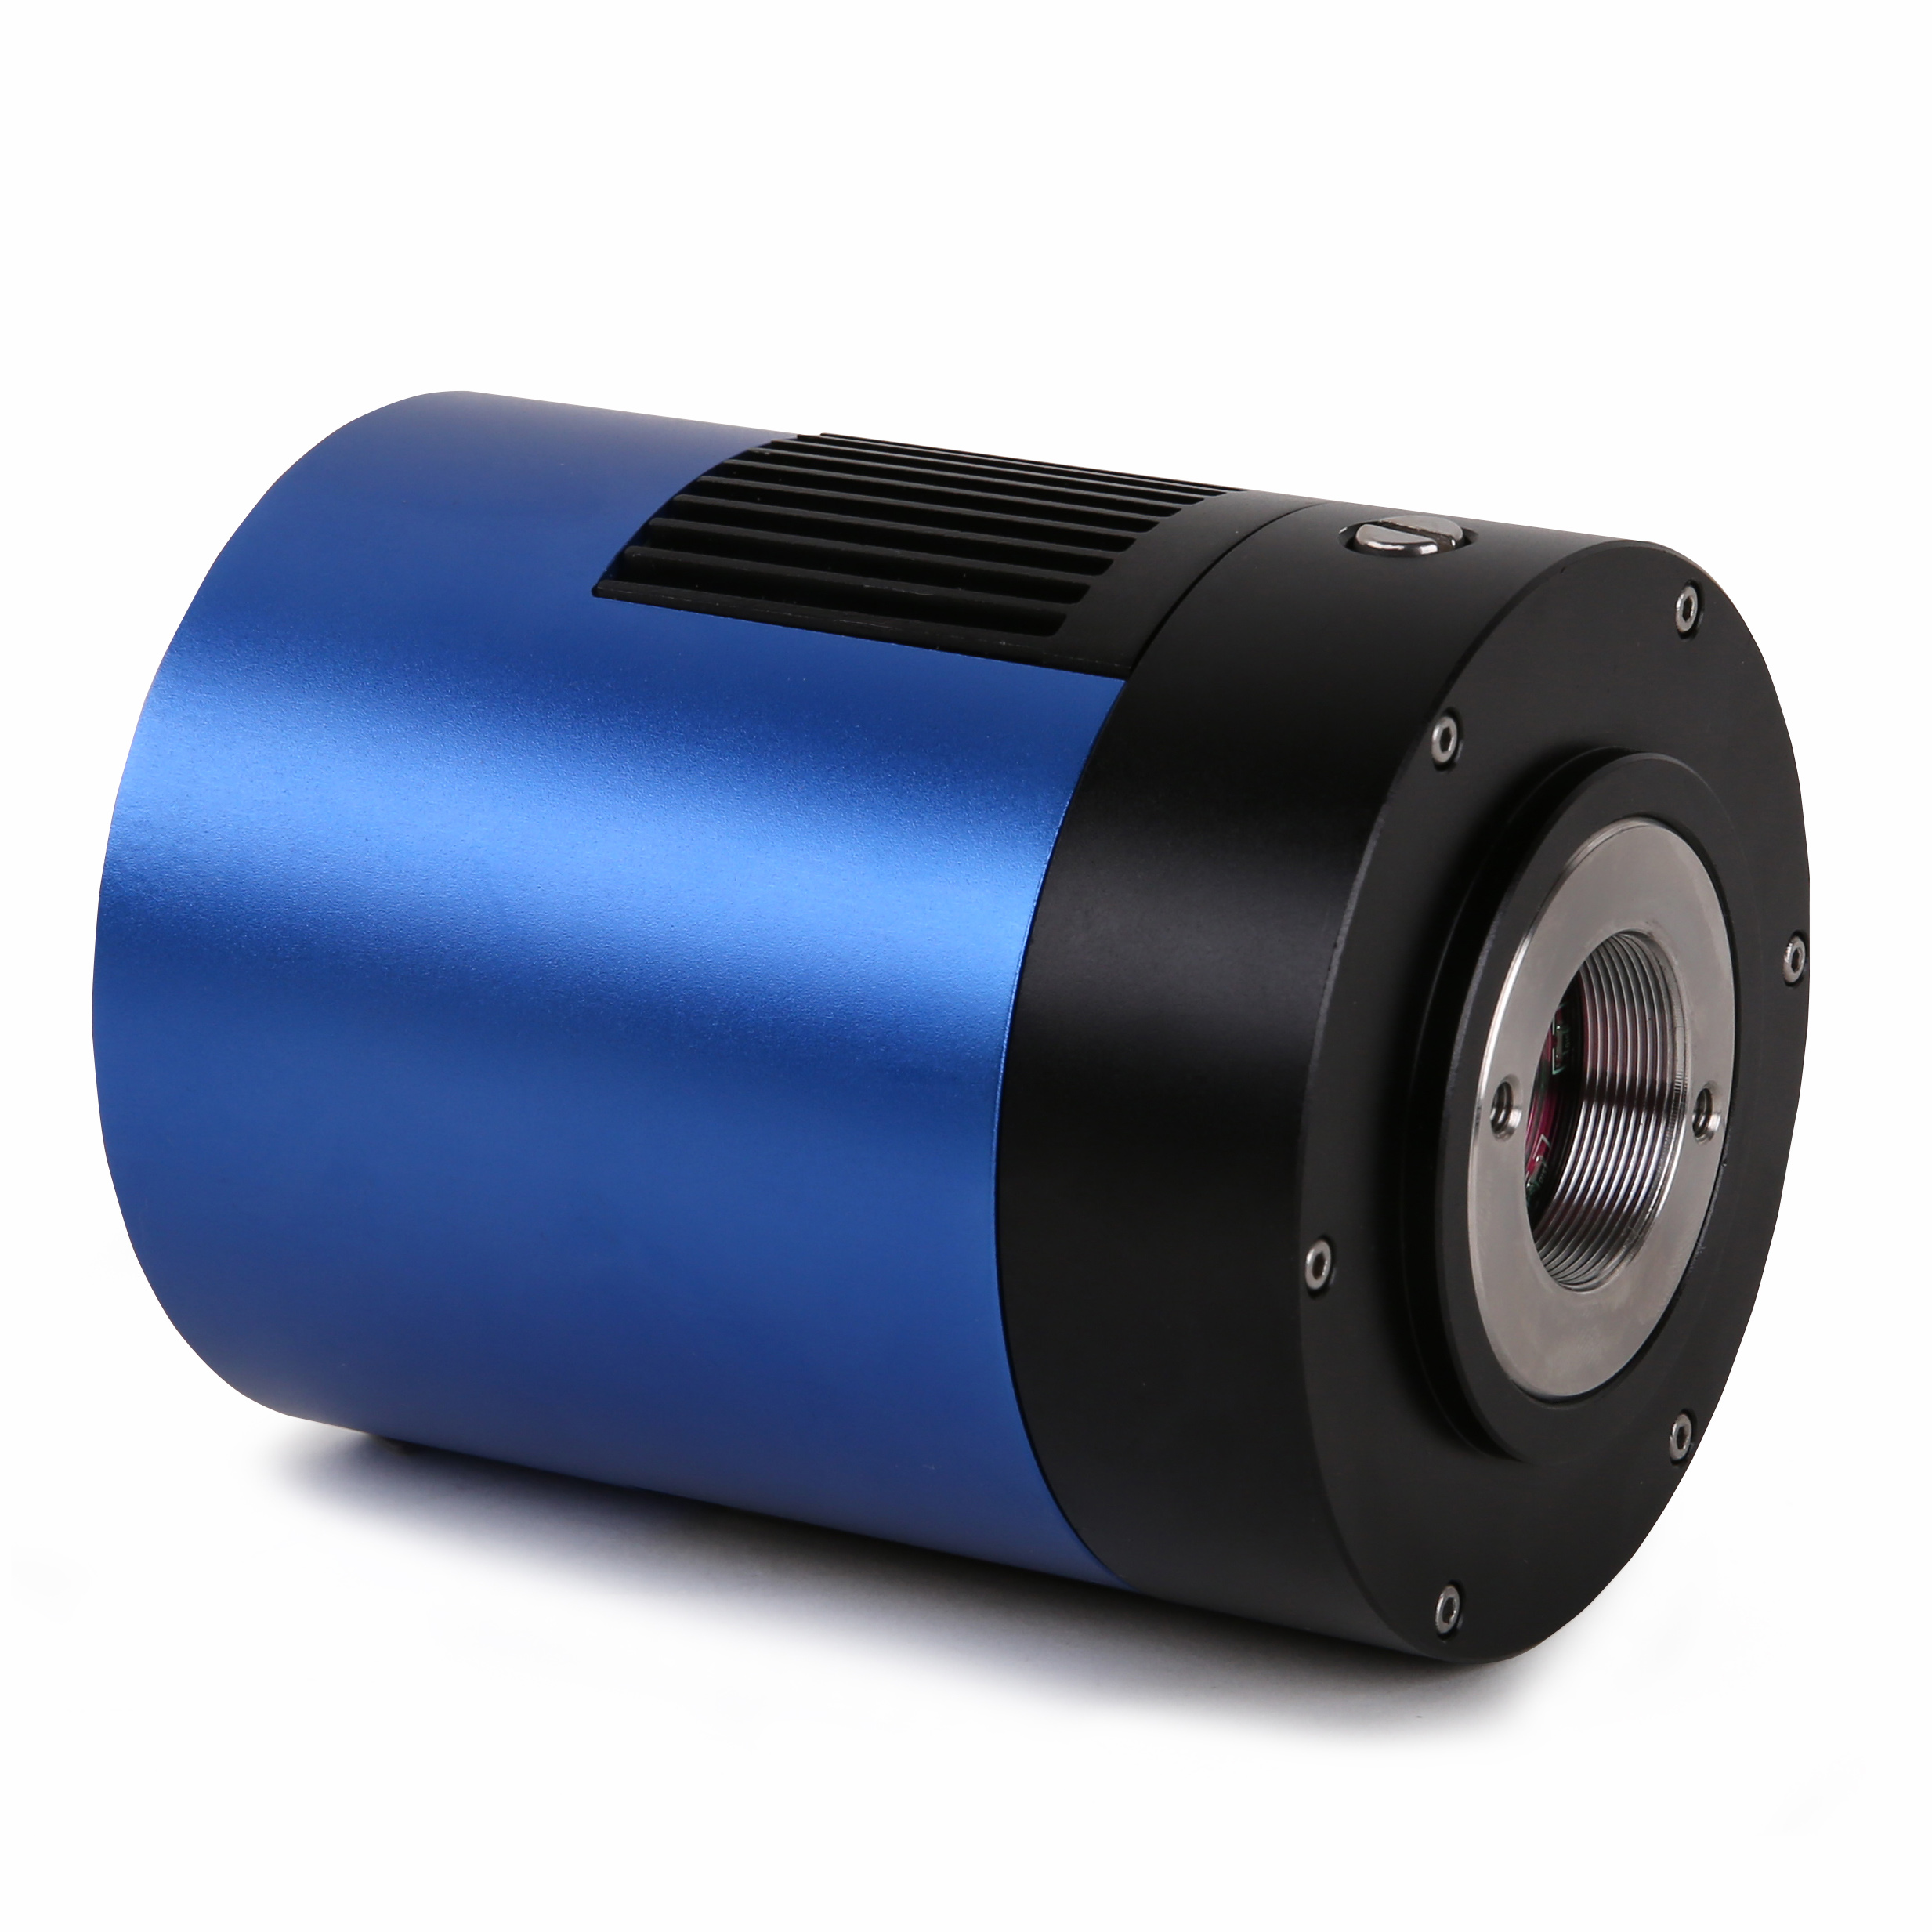 MTR3CMOS Series TE-Cooling C-mount USB3.0 CMOS Camera